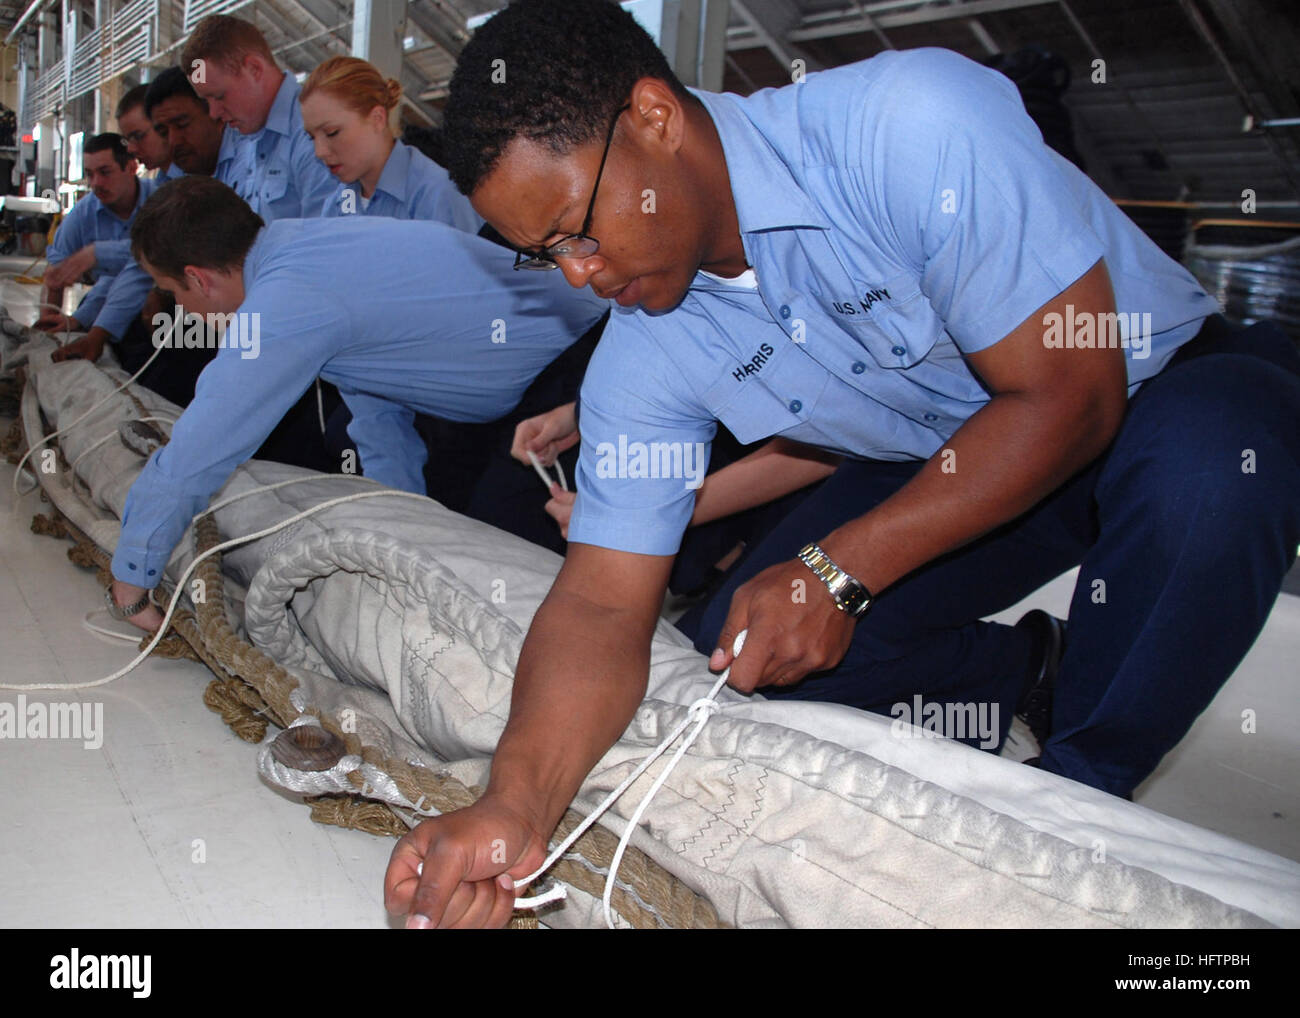 070524-N-2893B-001 CHARLESTOWN, Mass. (May 24, 2007) - In the Navy YardÕs USS Constitution Repair Facility, - Stock Image